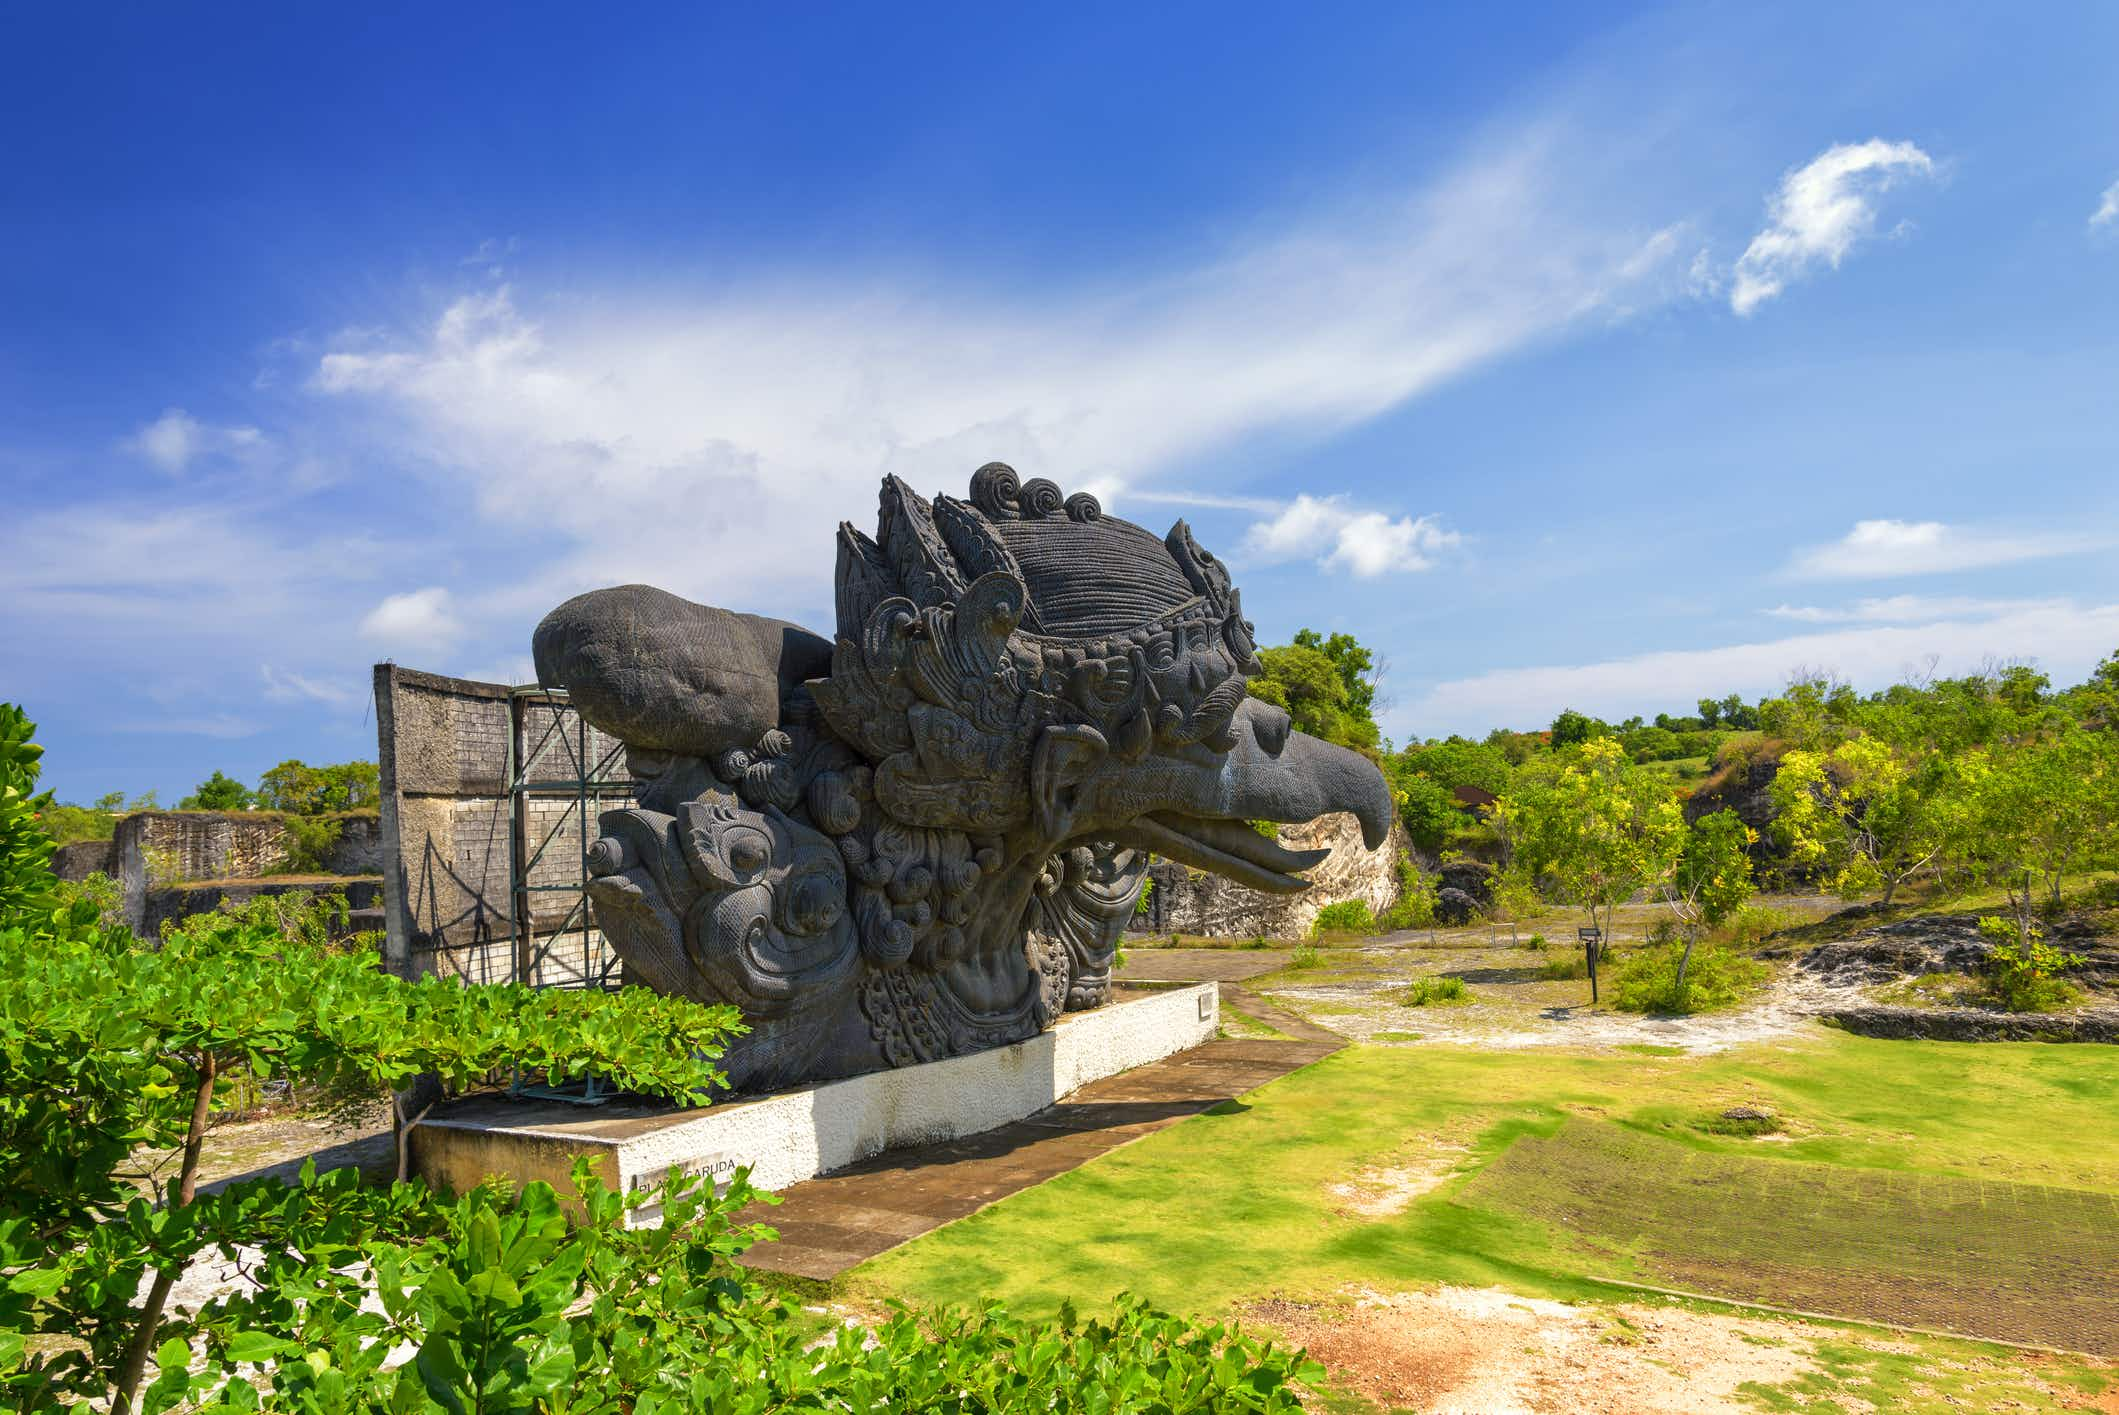 This statue of Hindu god Wisnu under construction in Bali is set to be one of the largest in the world